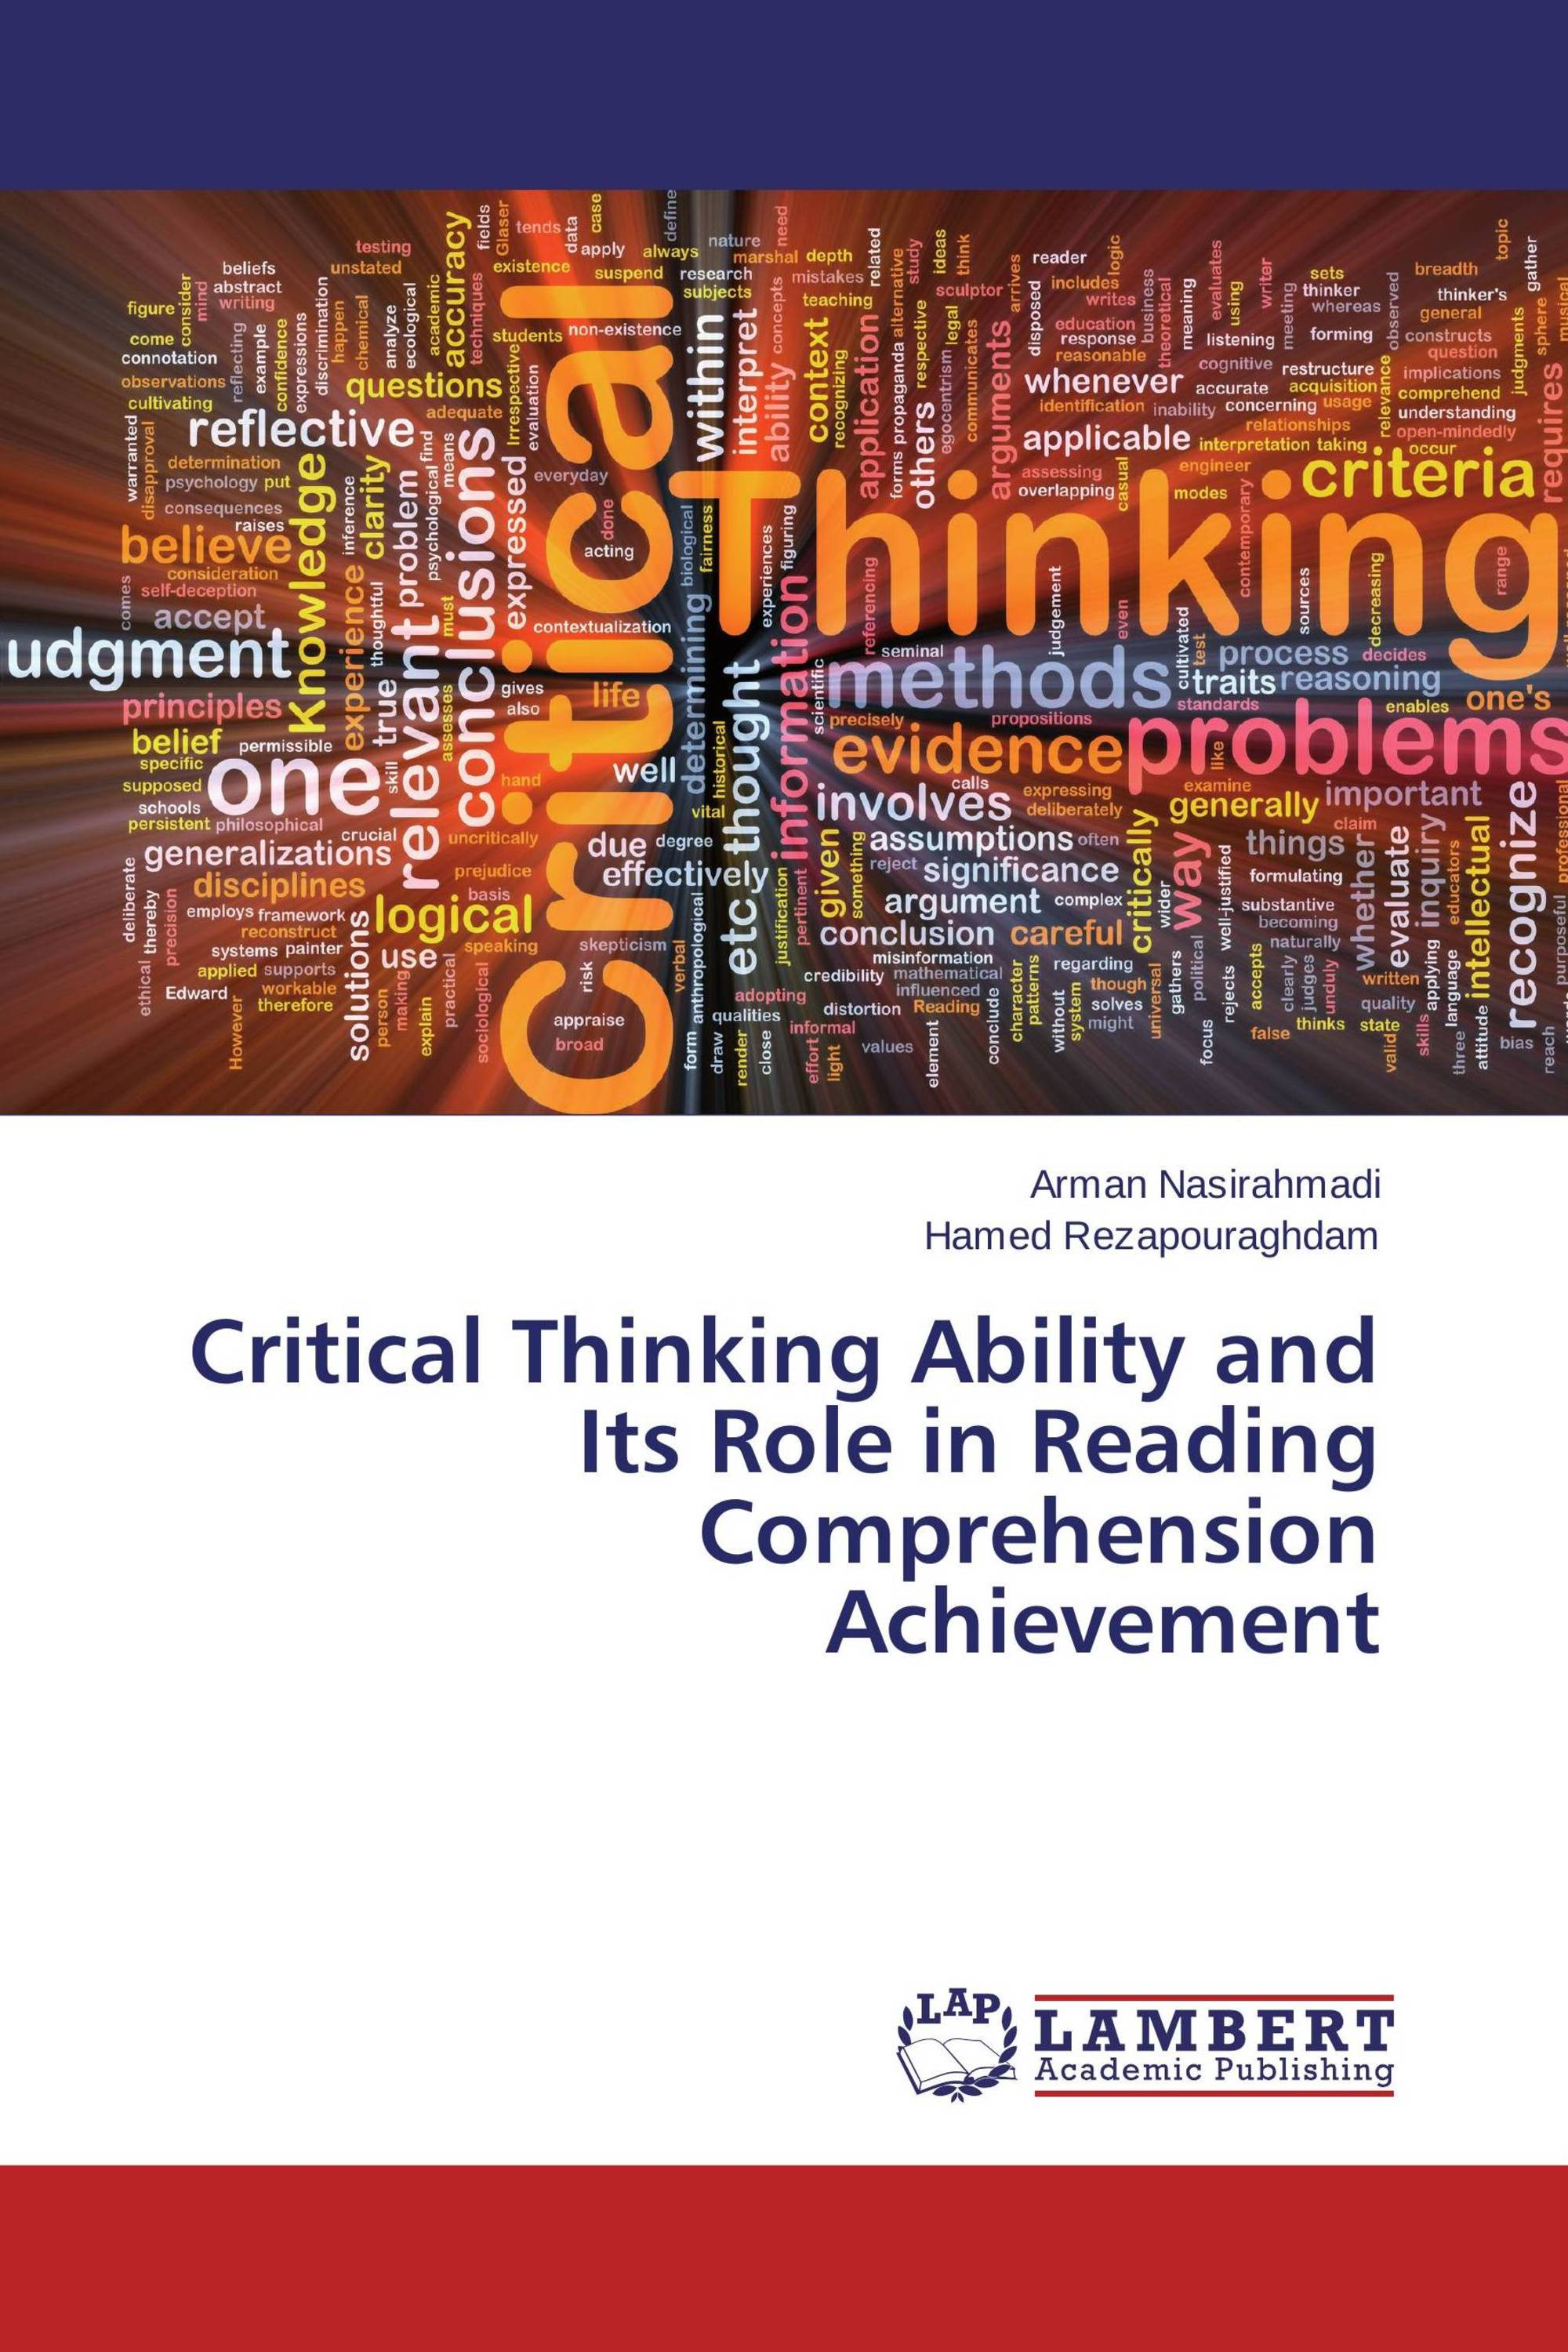 the effect of critical thinking on reading comprehension Effect of a model for critical thinking on student achievement the effect of richard paul's universal elements and standards of reasoning knowledge of thinking: practicing thinkers, unlike beginning thinkers are becoming knowledgeable of what it would take to systematically monitor the.